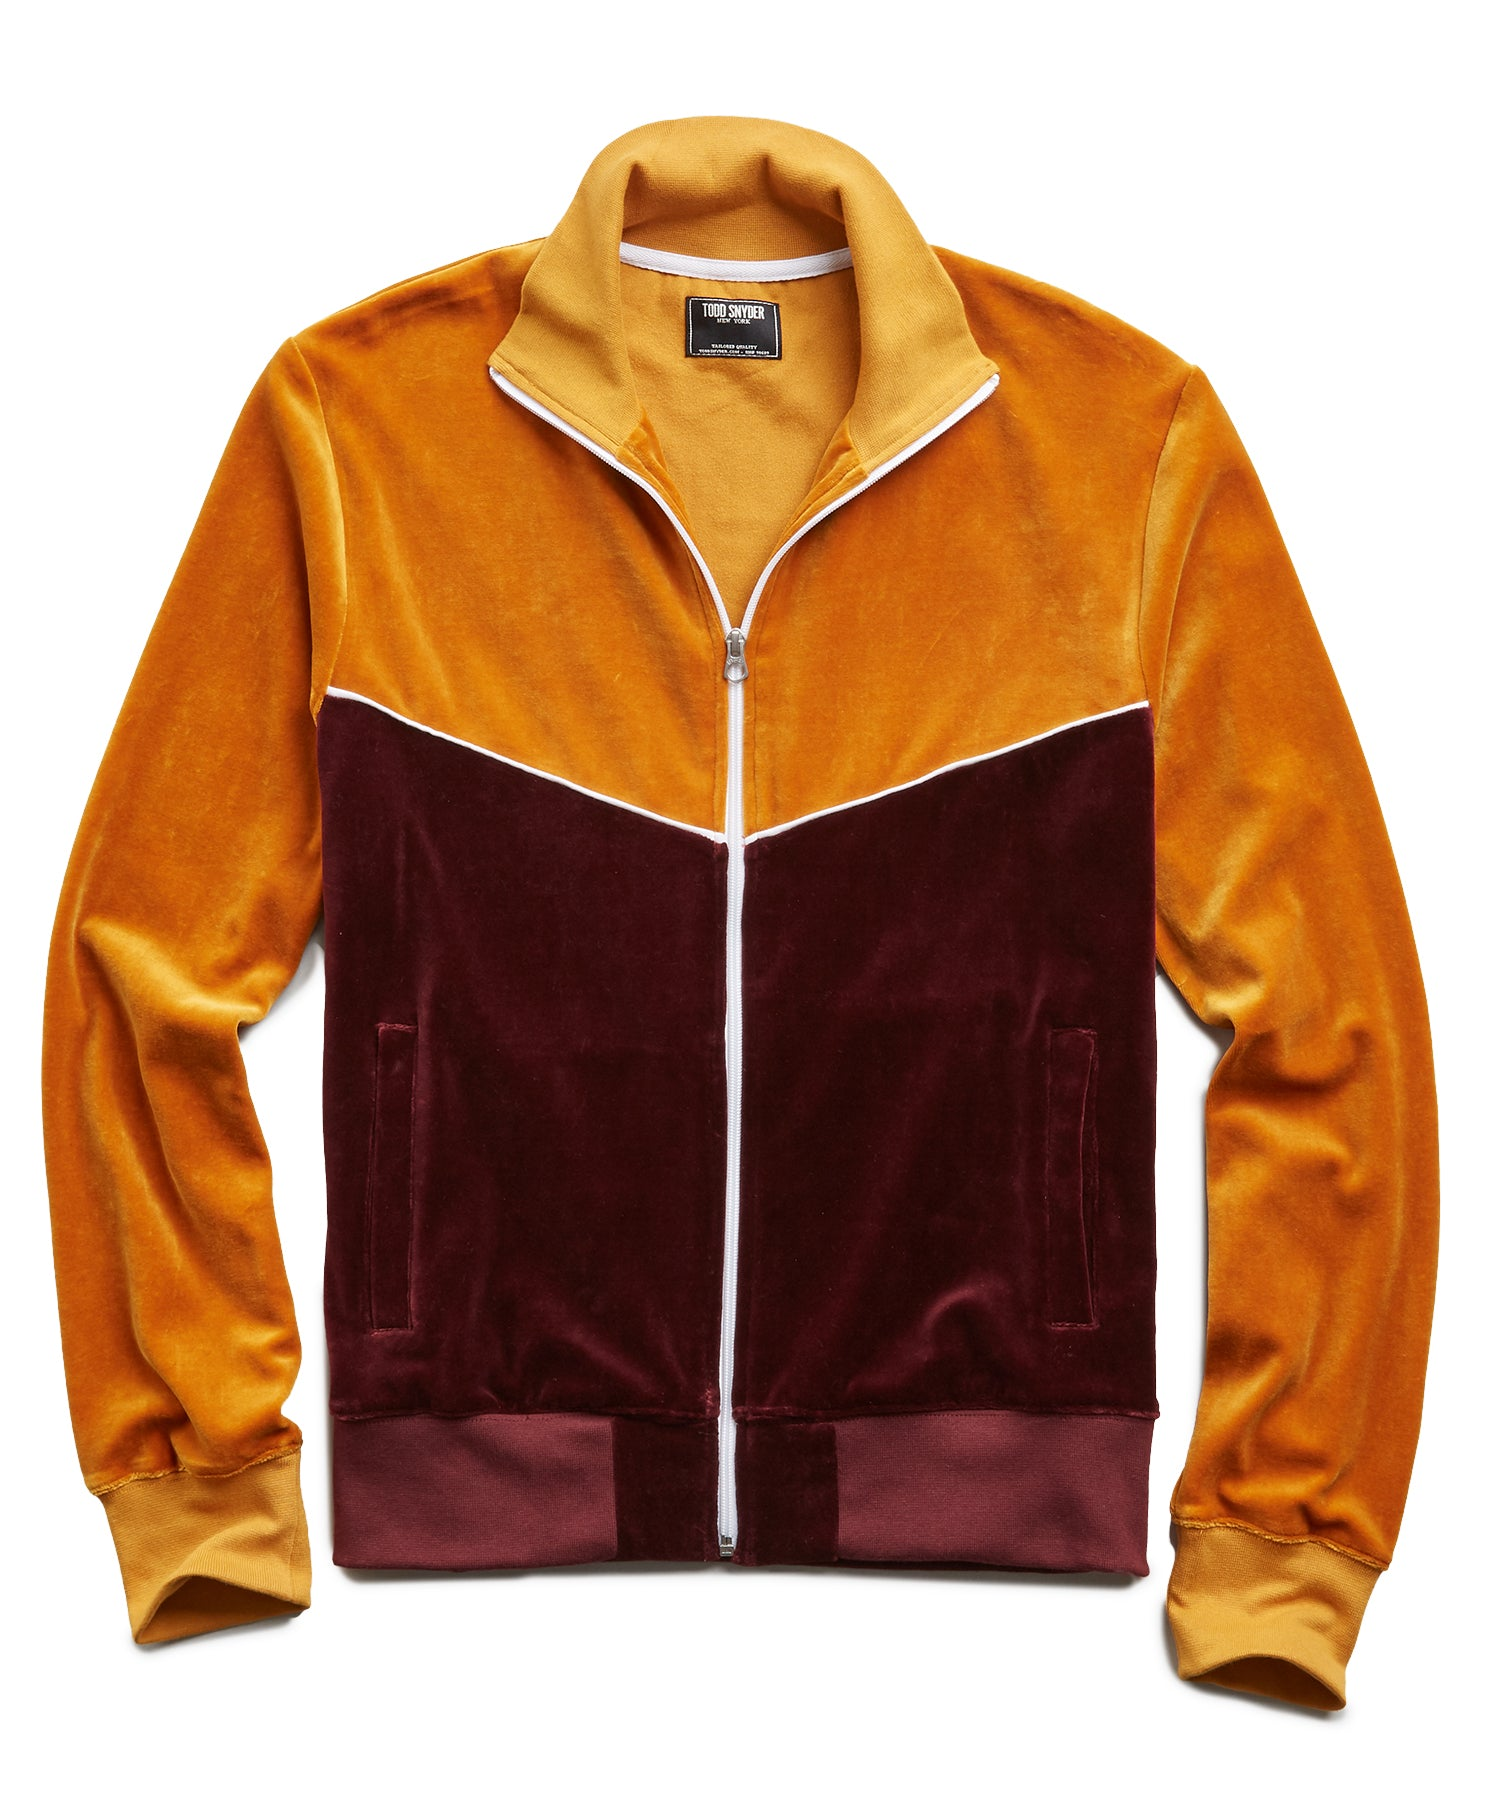 Velour Track Jacket in Mustard